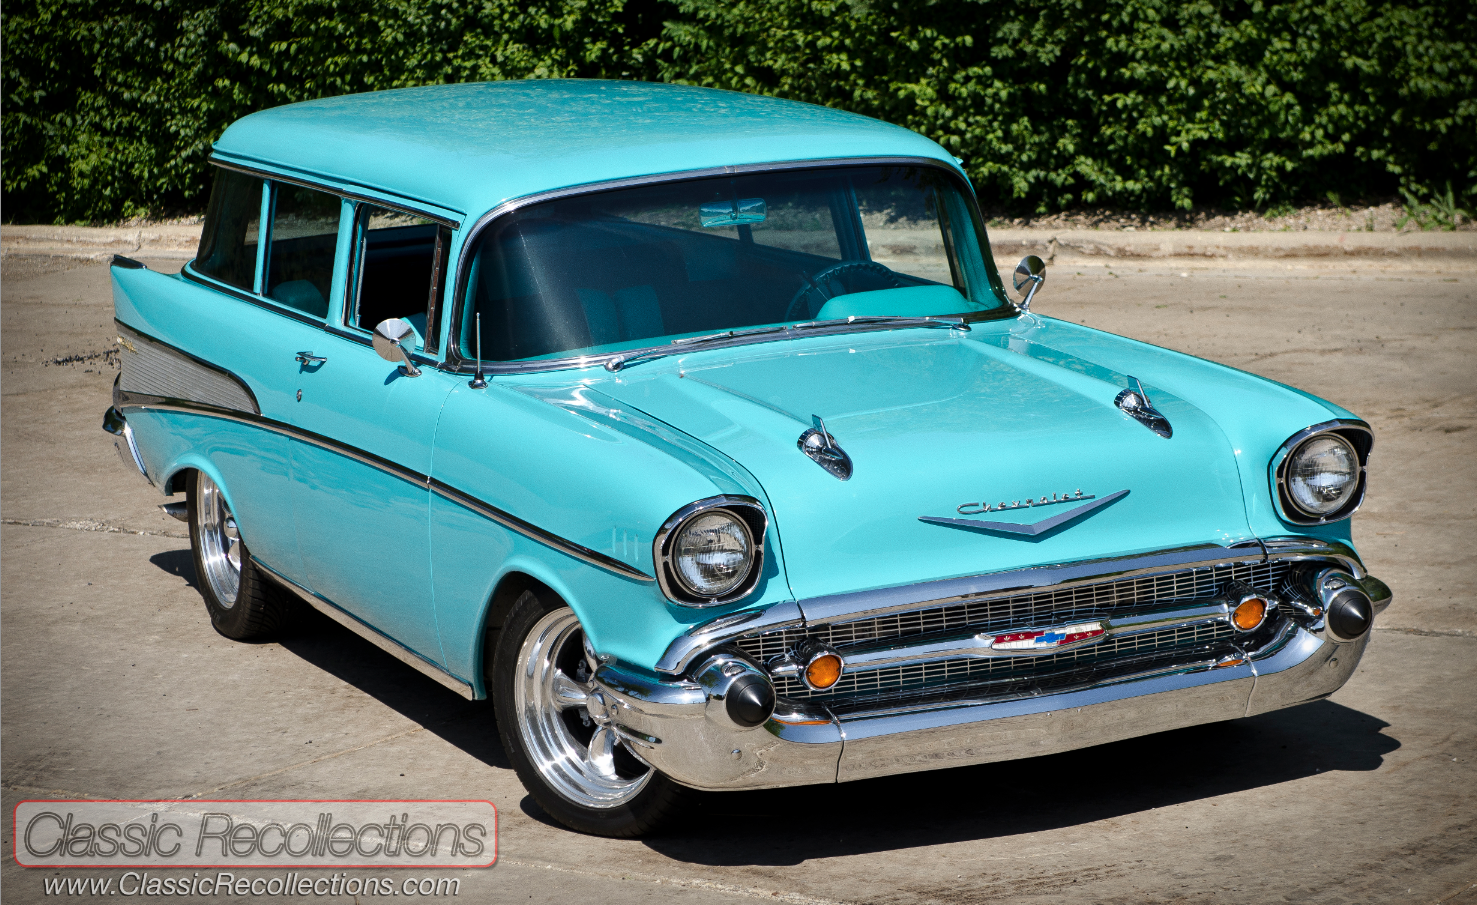 This Isnt A Nomad But 57 Wagon Is Decked Out In Bel Air Trim 1957 Chevy Feature Chevrolet 210